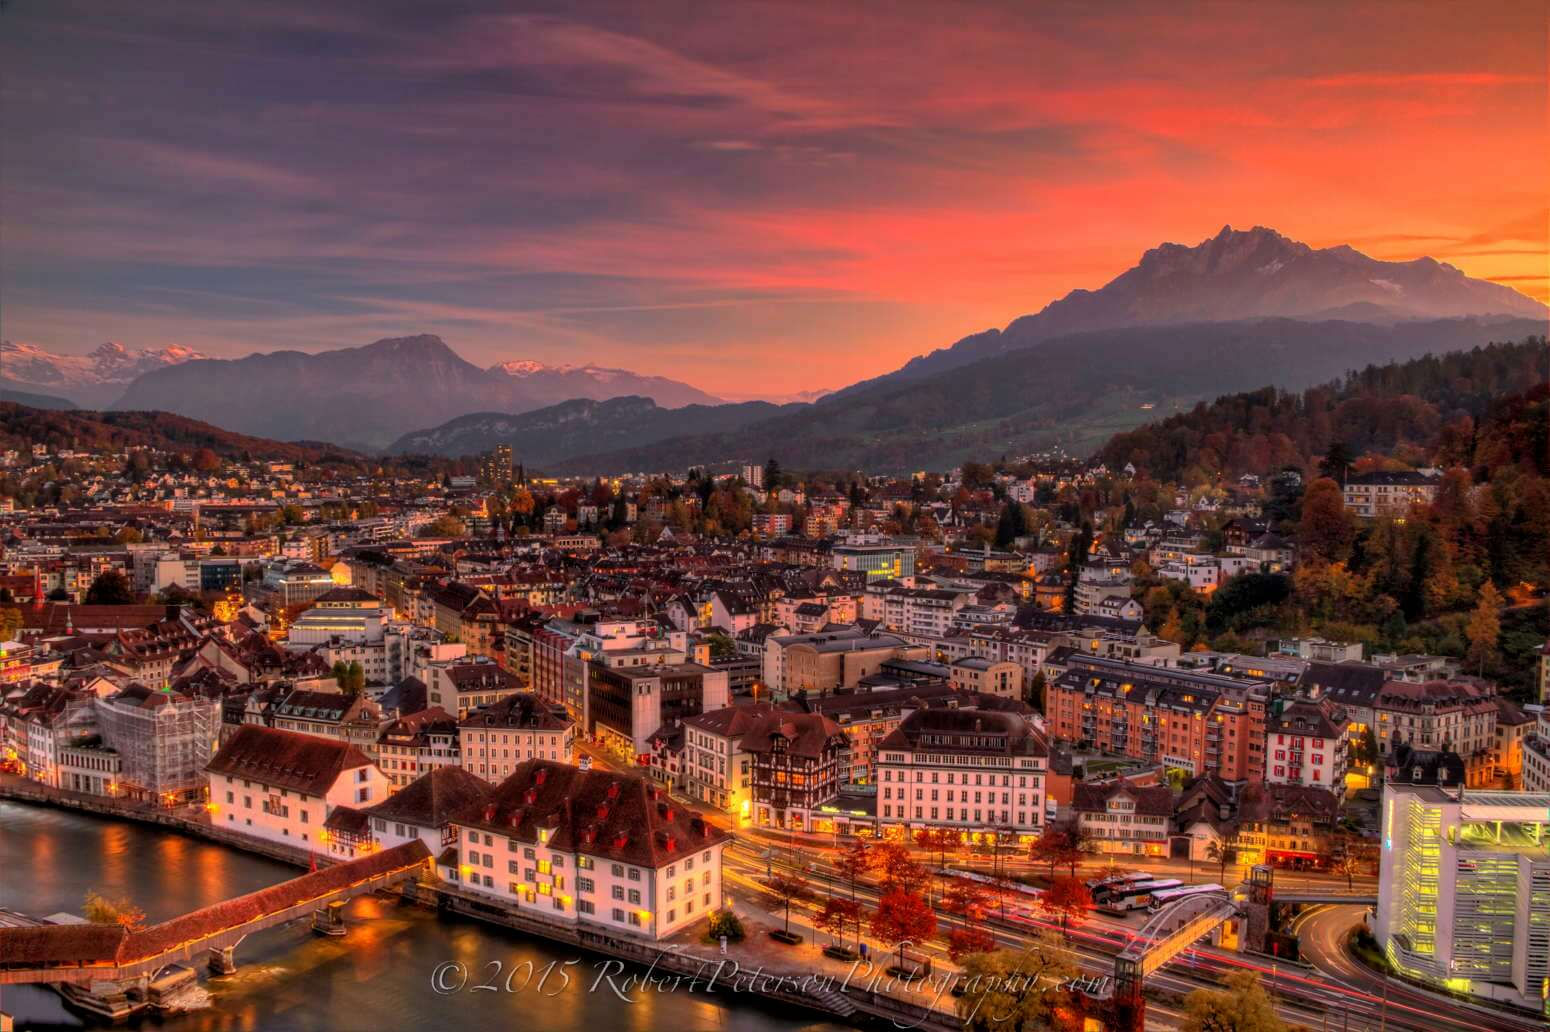 Luzern Lucerne Switzerland Tower hdr photography robert peterson photography